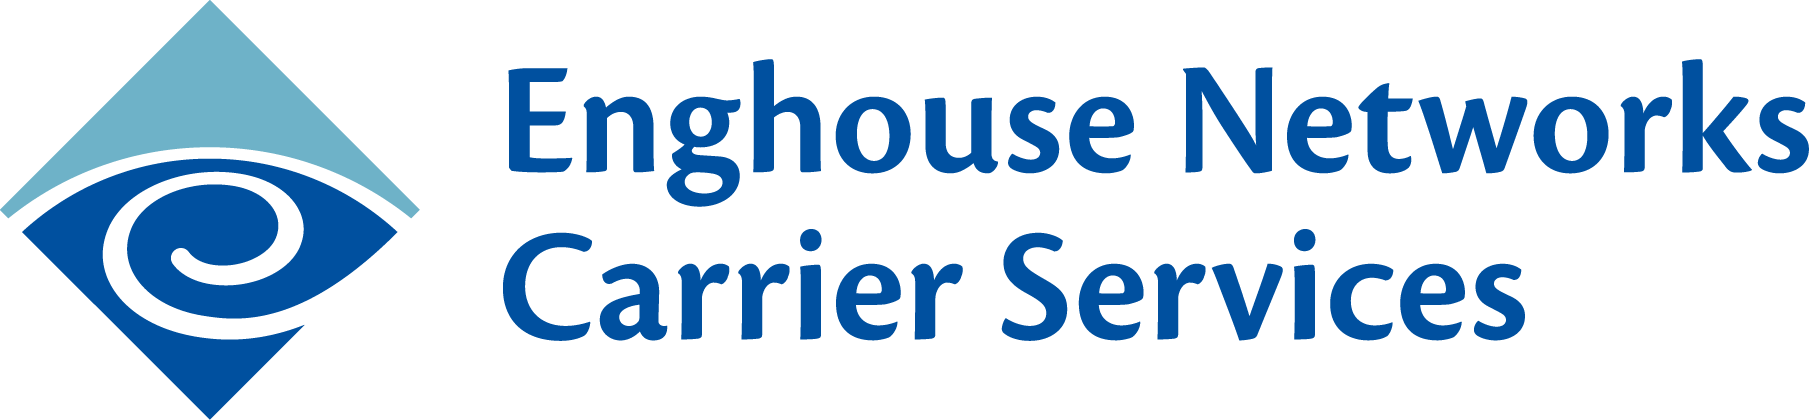 Enghouse Carrier-Services – is covering the whole change of carrier process – Enghouse Networks (Germany) GmbH